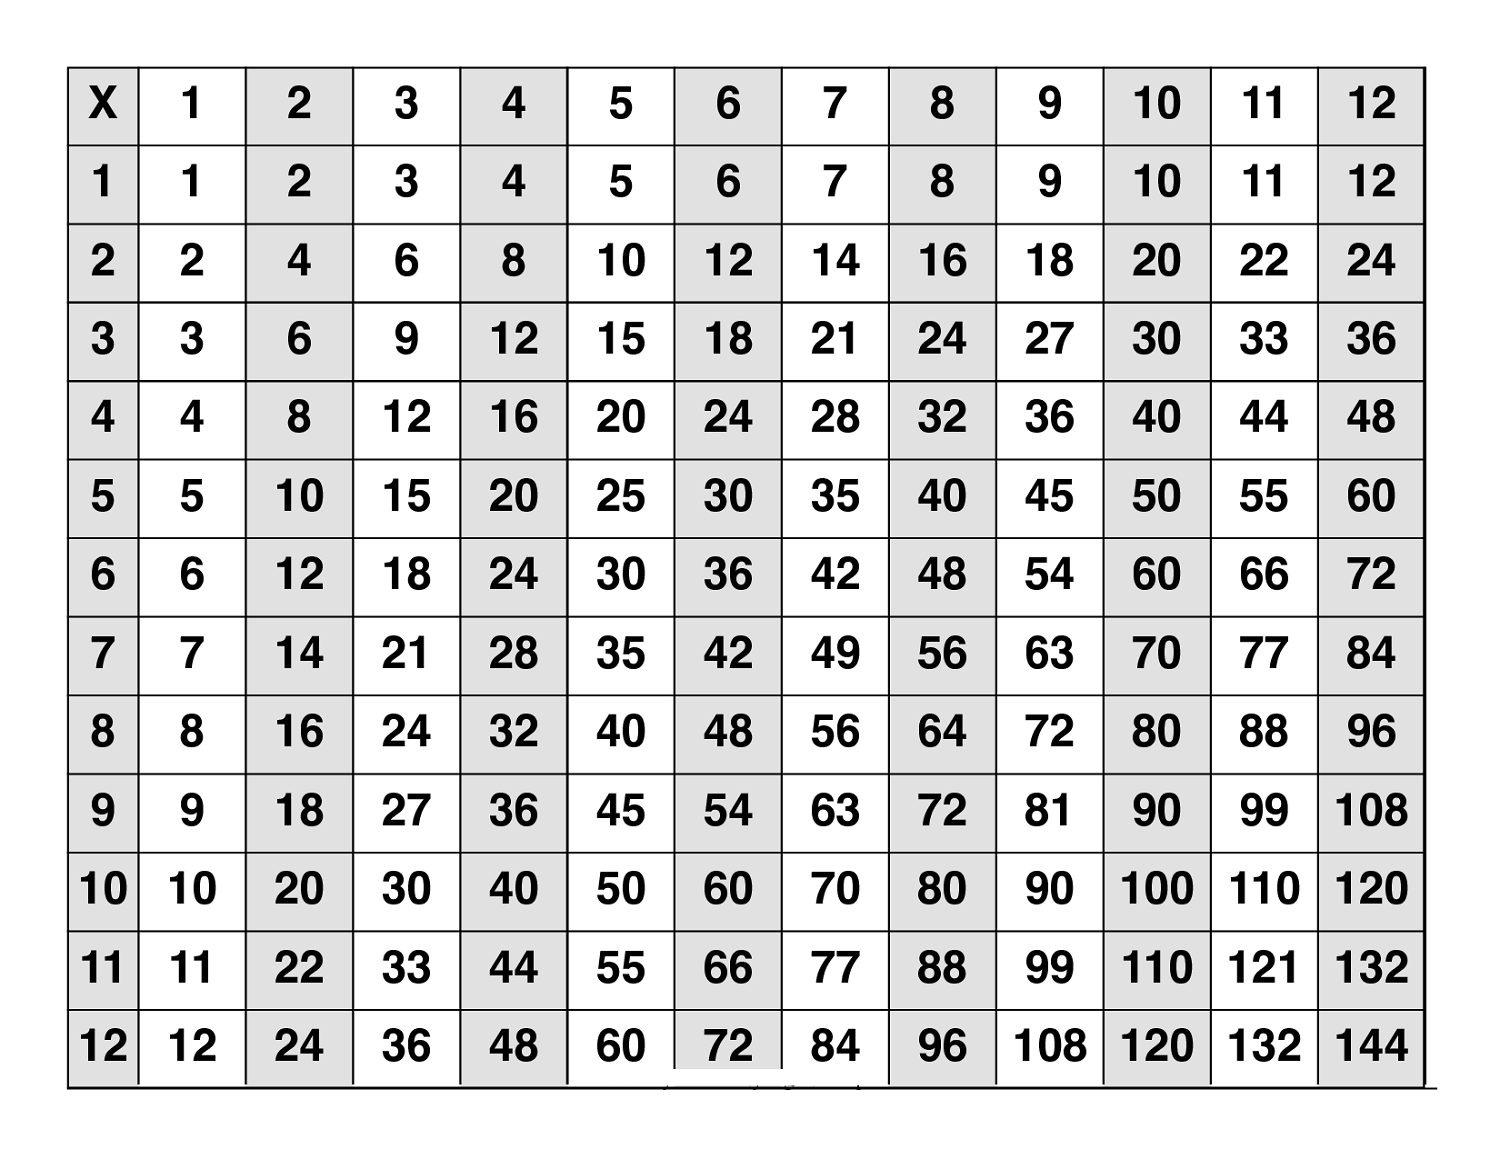 large multiplication table 2016